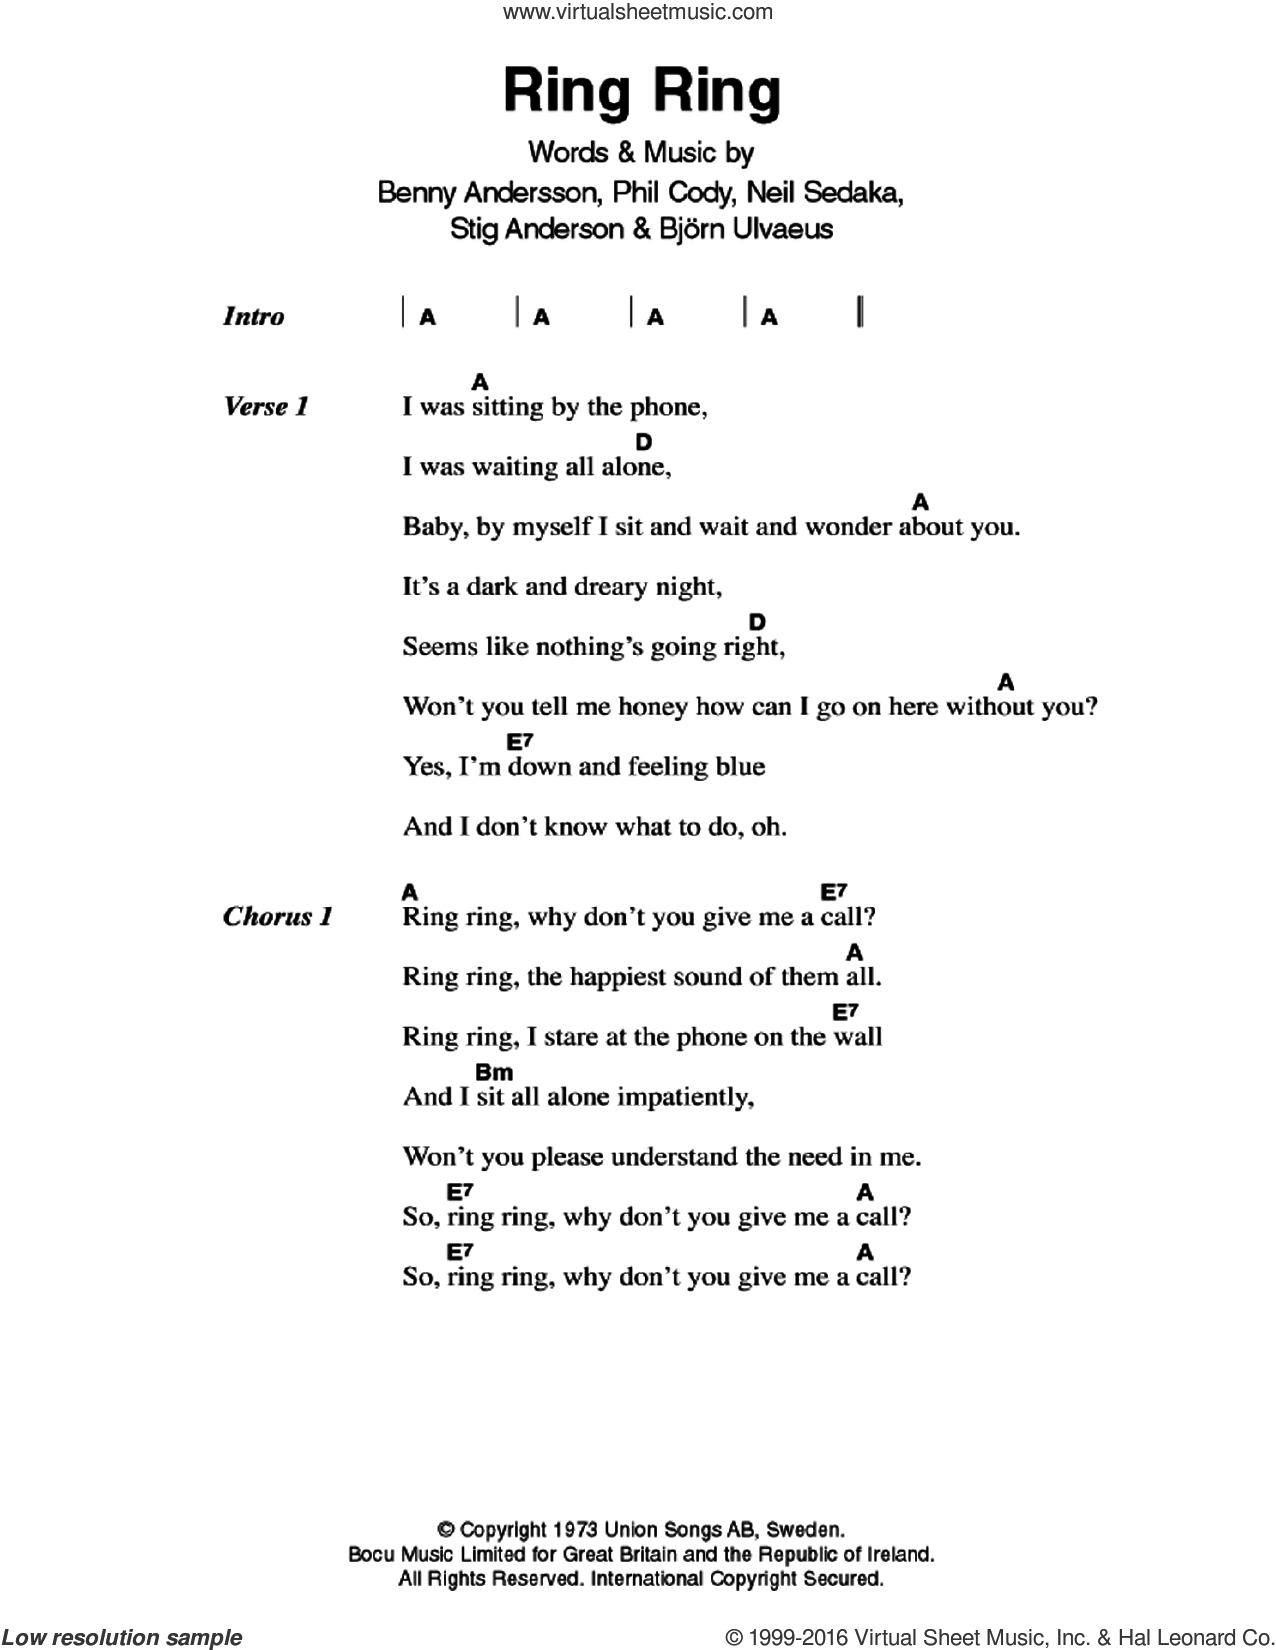 Ring, Ring sheet music for guitar (chords) by Stig Anderson, ABBA, Benny Andersson, Bjorn Ulvaeus, Neil Sedaka and Philip Cody. Score Image Preview.